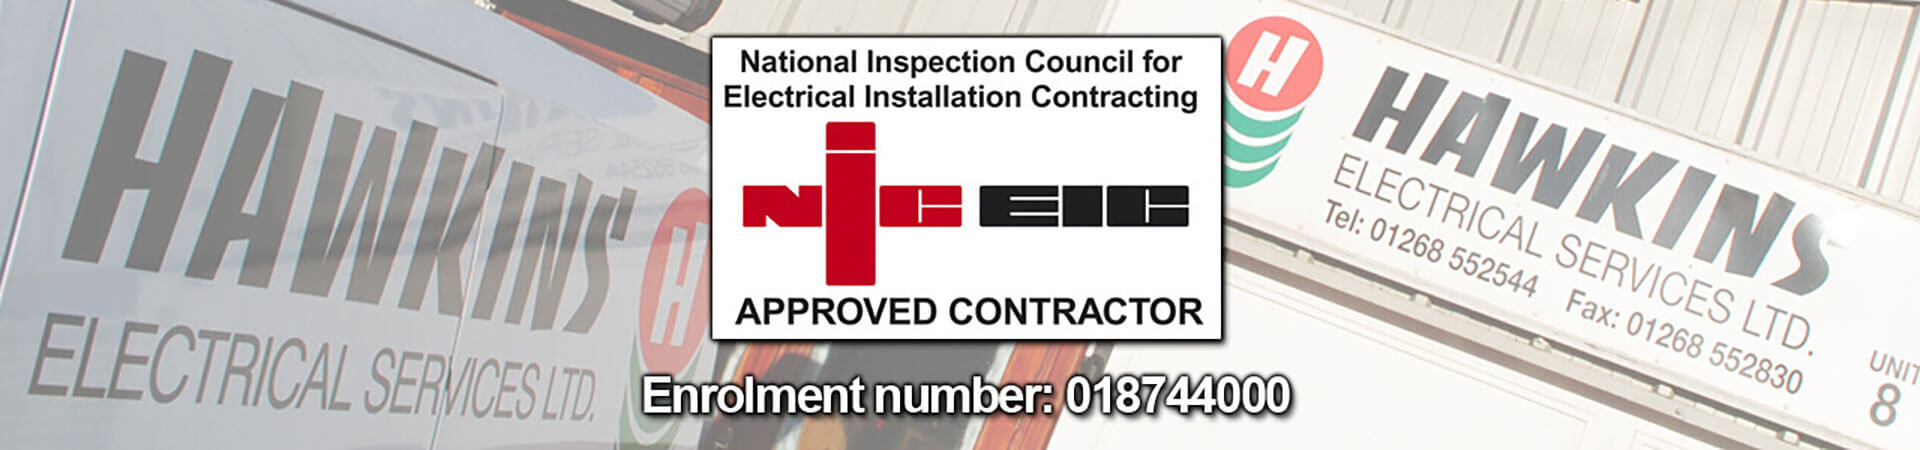 Hawkins Electical Services Are NIC EIC Approved